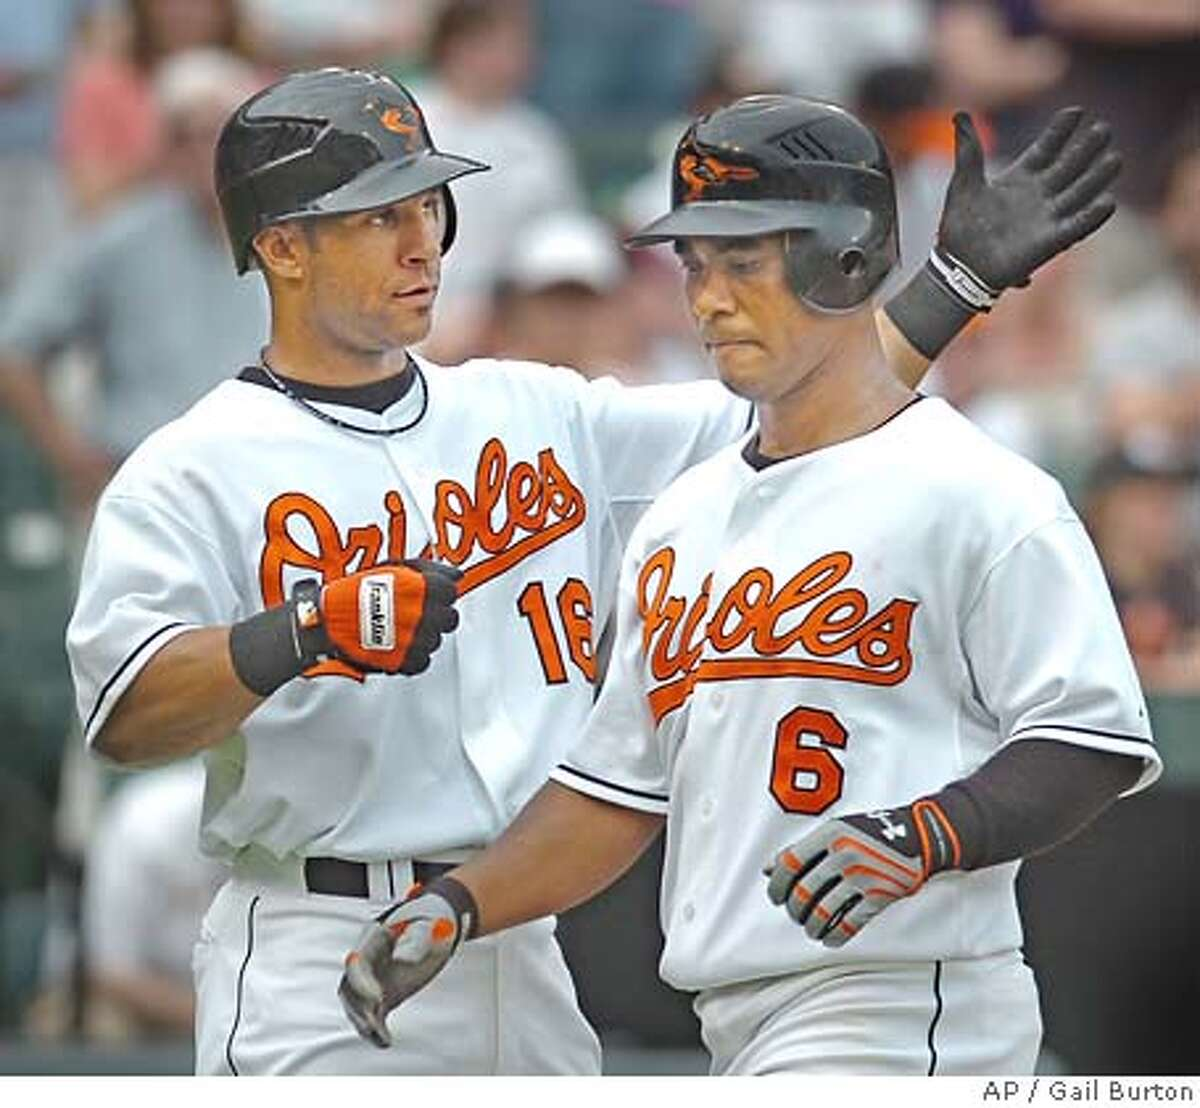 Baltimore Oriole's Jay Payton, left, congratulates Melvin Mora after Mora's two-run home run off Oakland Athletics' Joe Blanton in the fourth inning of a baseball game Sunday, May 27, 2007, in Baltimore.(AP Photo/Gail Burton)